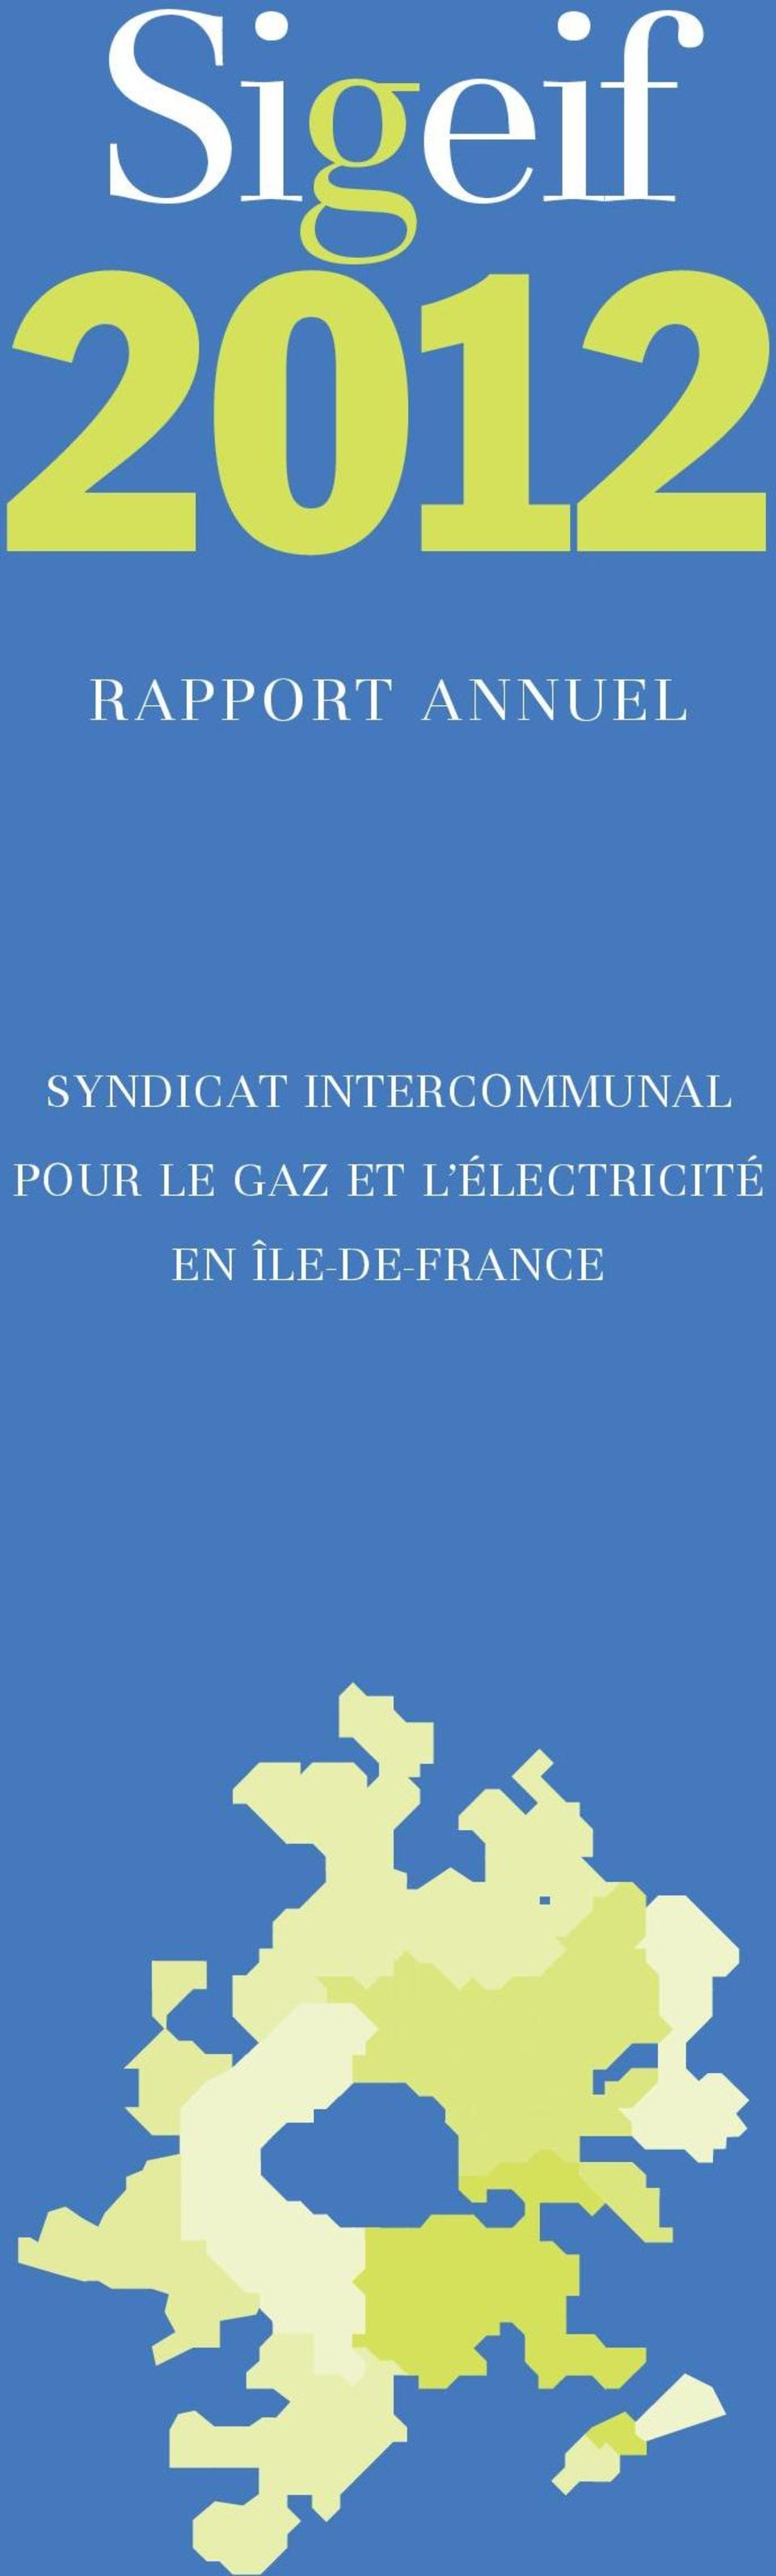 Intercommunal pour le